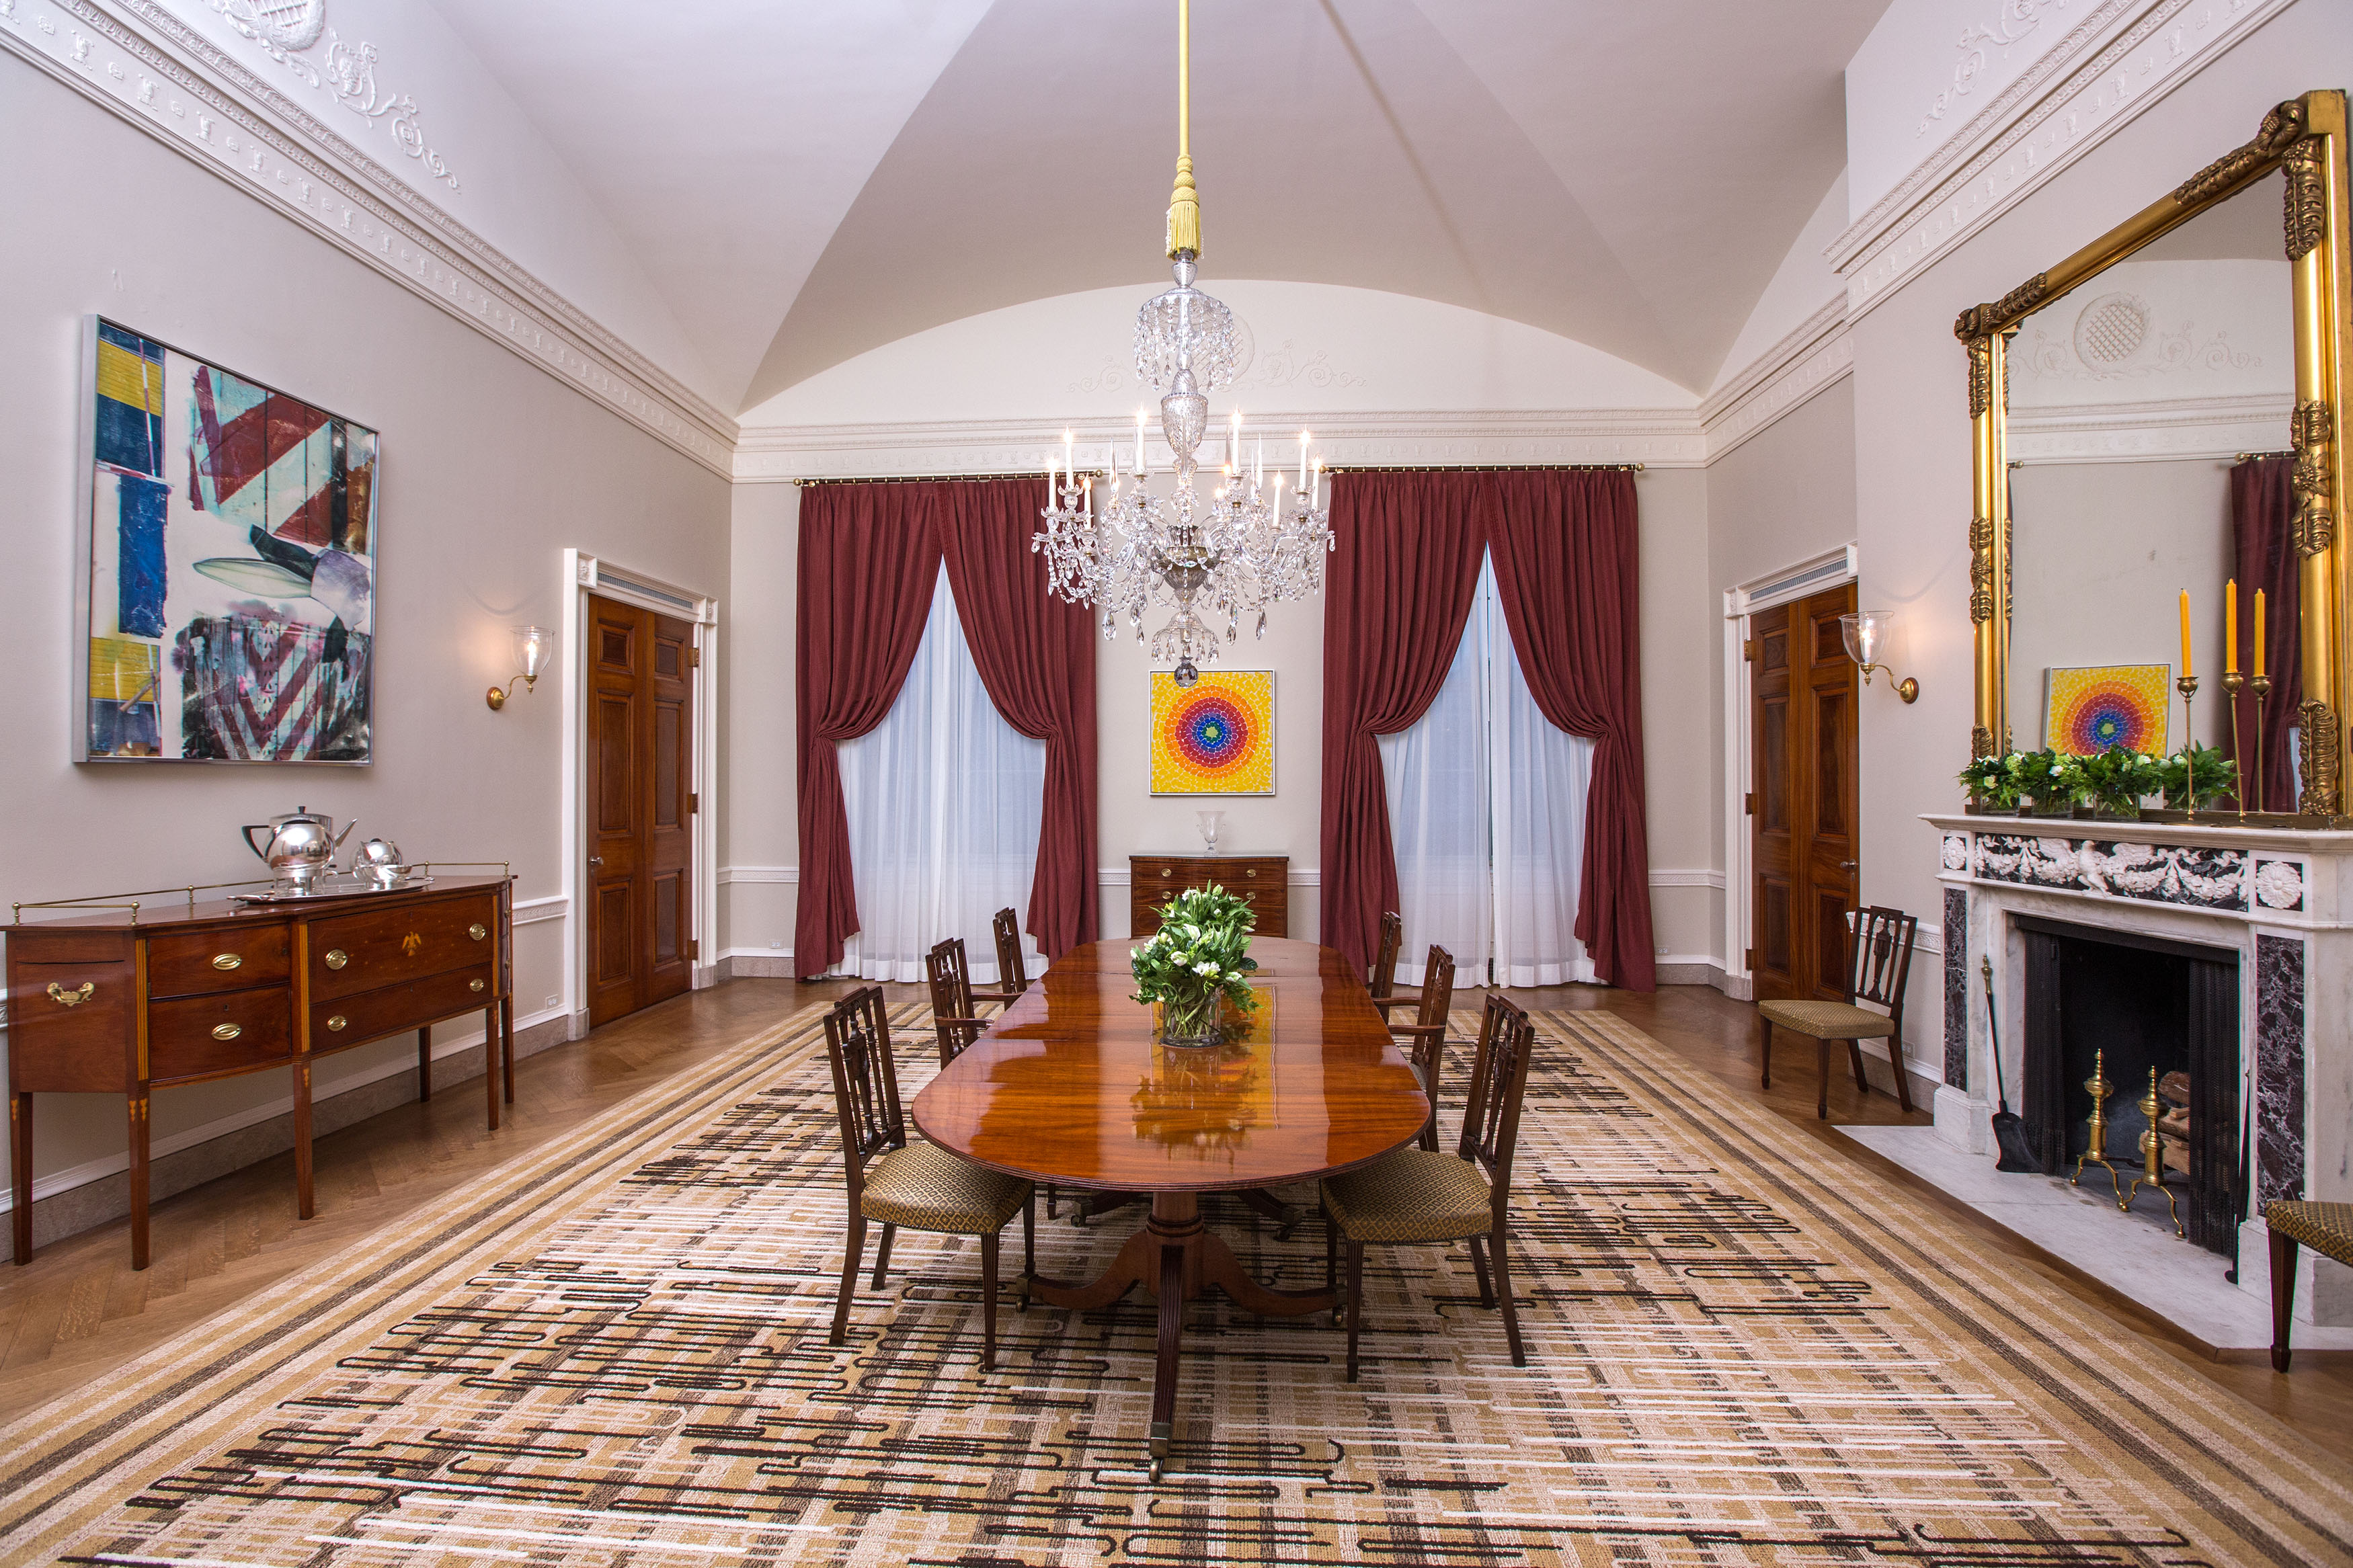 The Old Family Dining Room Of The White House, Feb. 9, 2015. Part 53